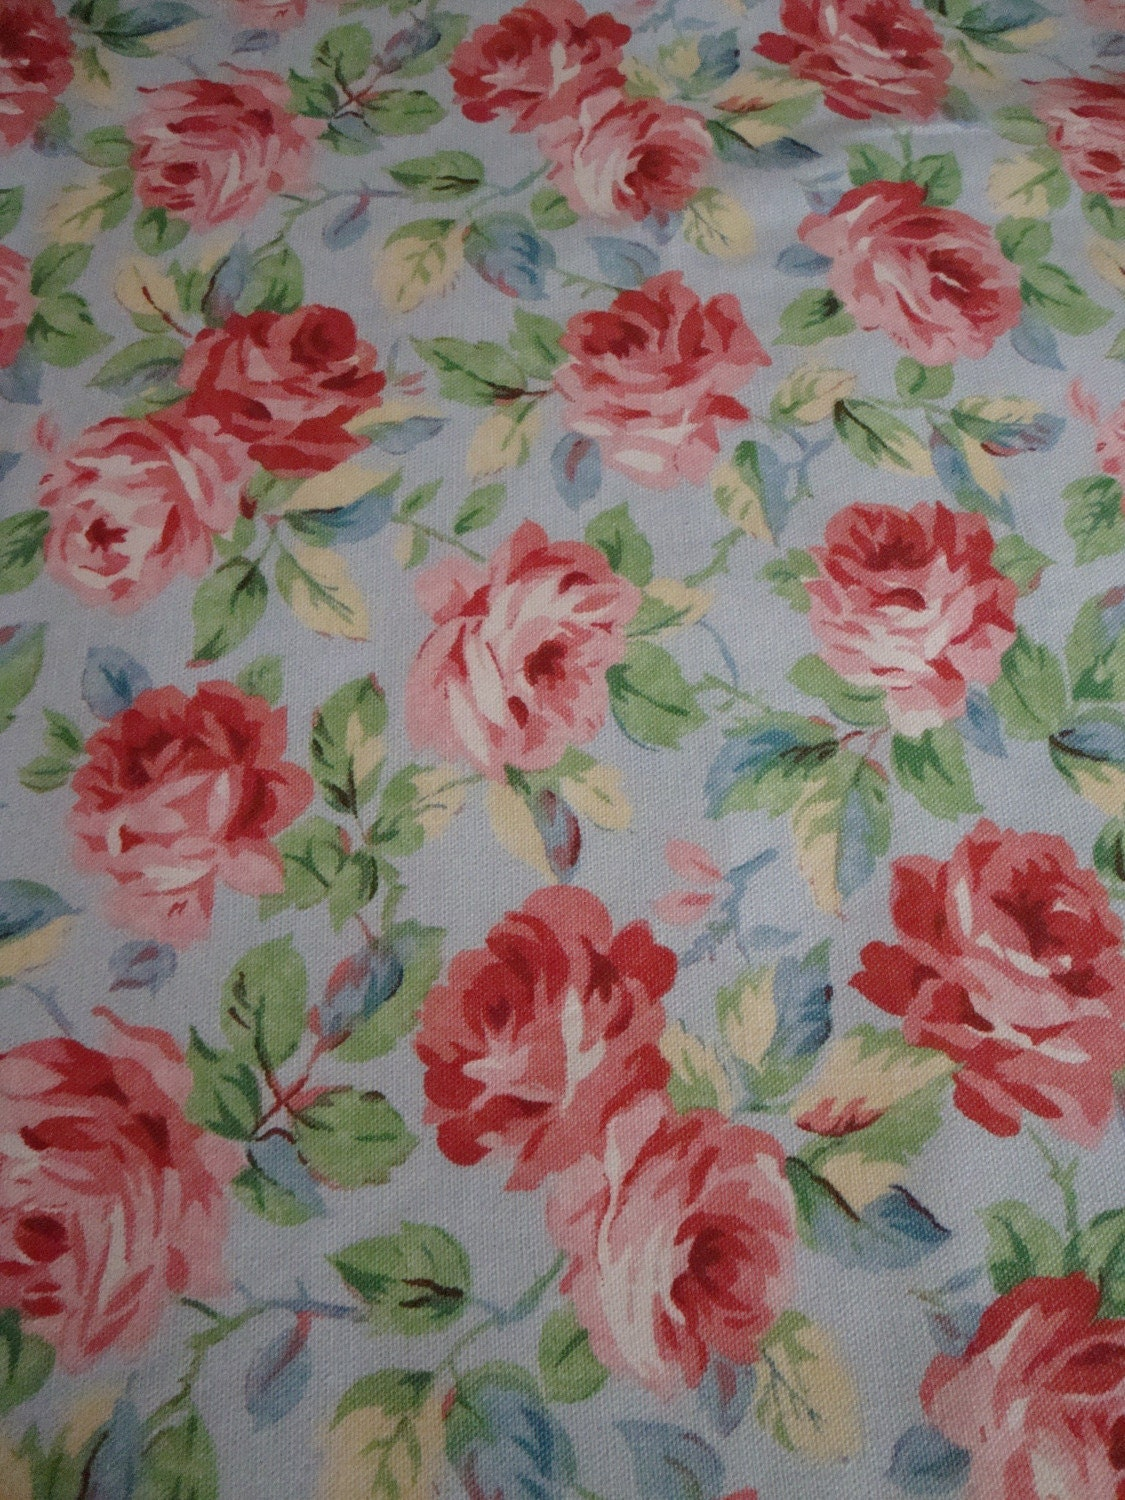 cotton upholstery fabric shabby chic roses roses roses. Black Bedroom Furniture Sets. Home Design Ideas